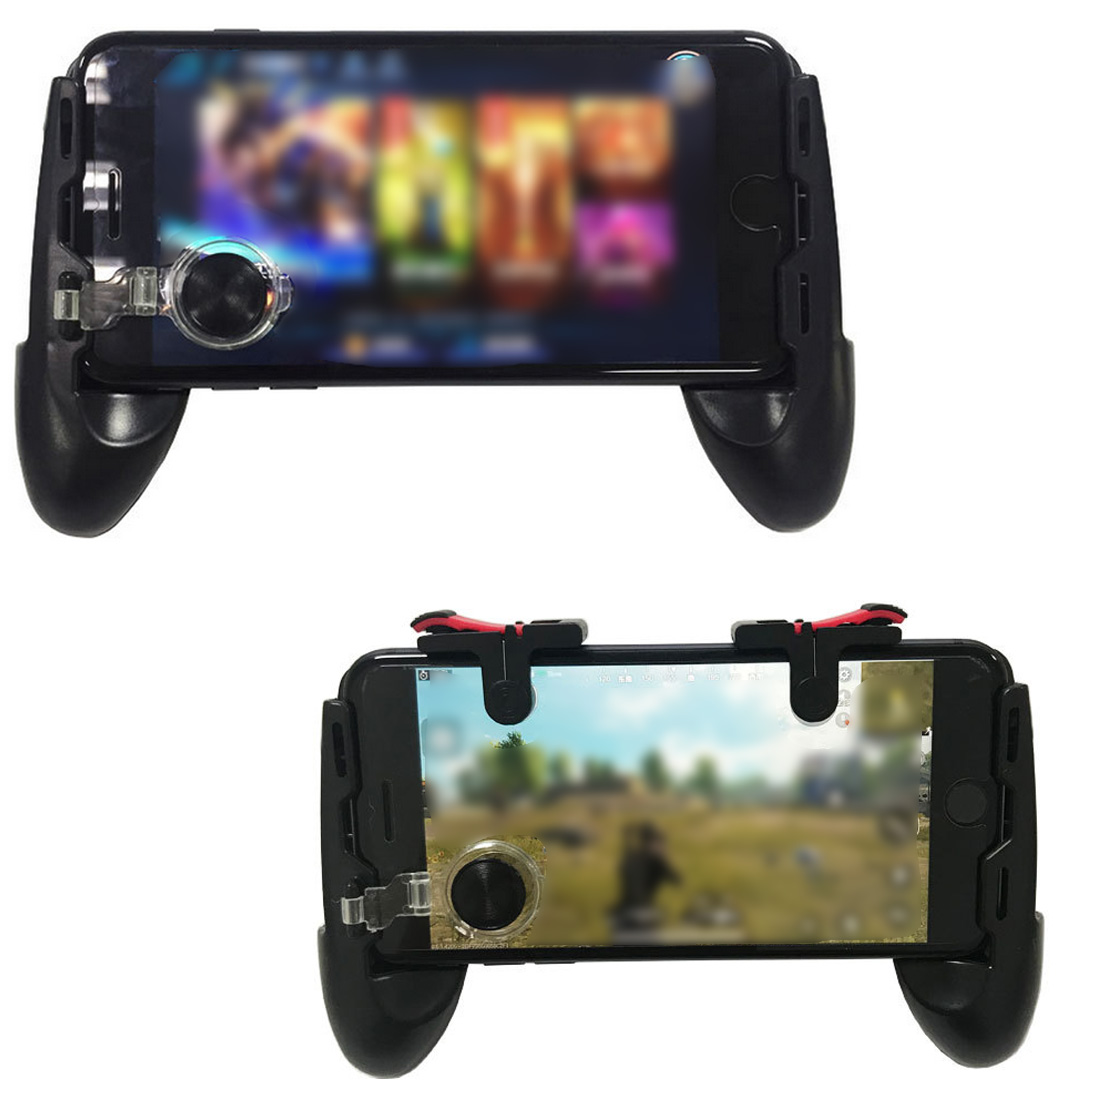 New Mobile Game Controller Gamepad + L1 R1 Trigger Aim Button L1R1 Shooter + Touch Pad Joystick for iPhone Android Phone Gaming